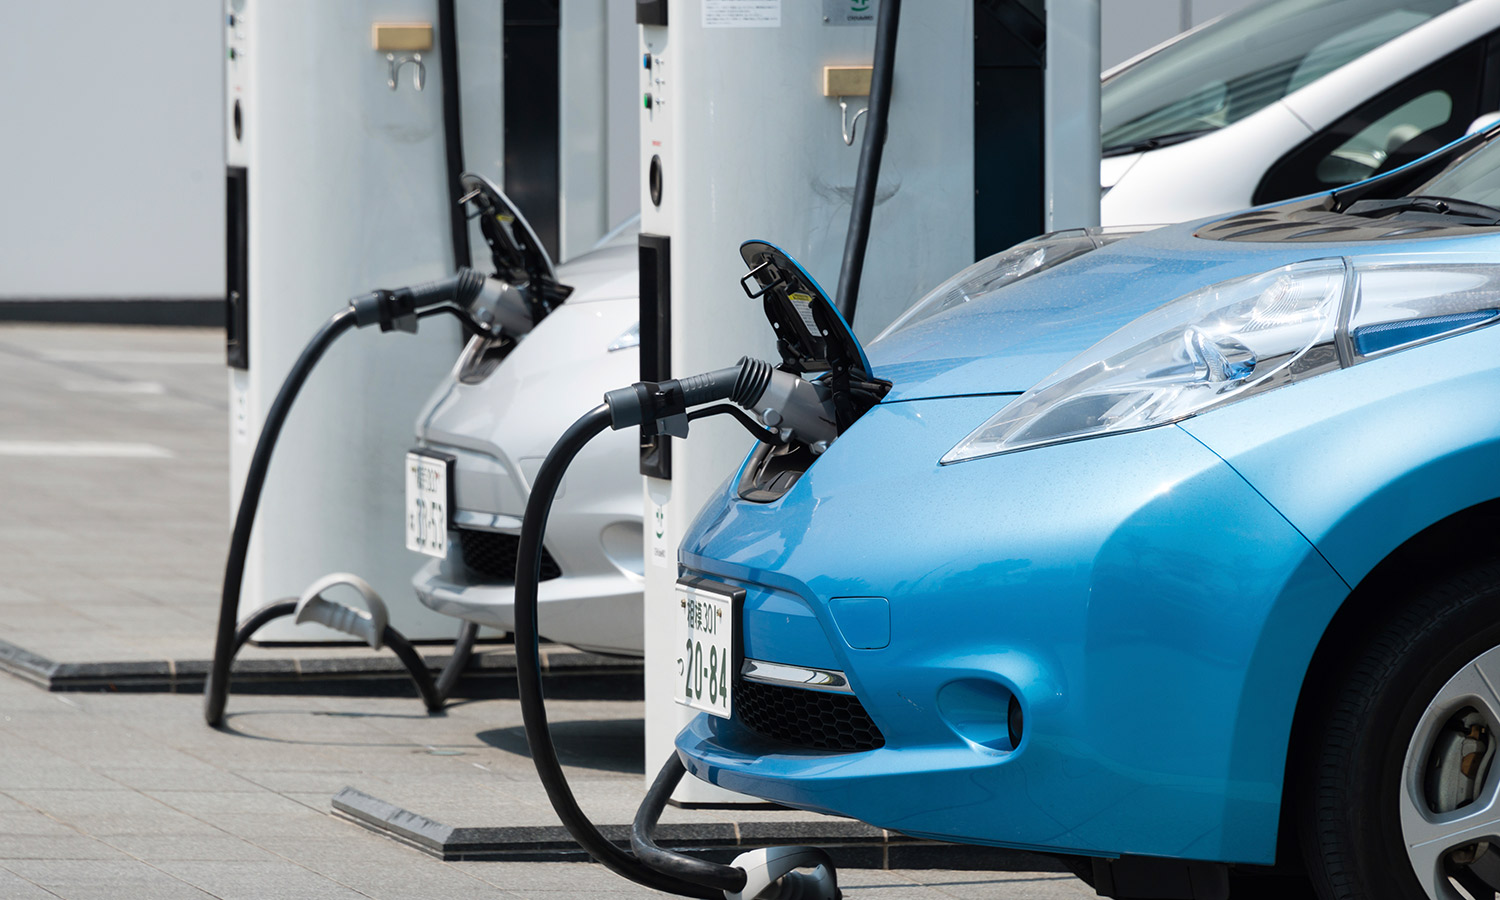 Are Electric Vehicles Really Better for the Climate? Yes. Here's Why - Common Dreams